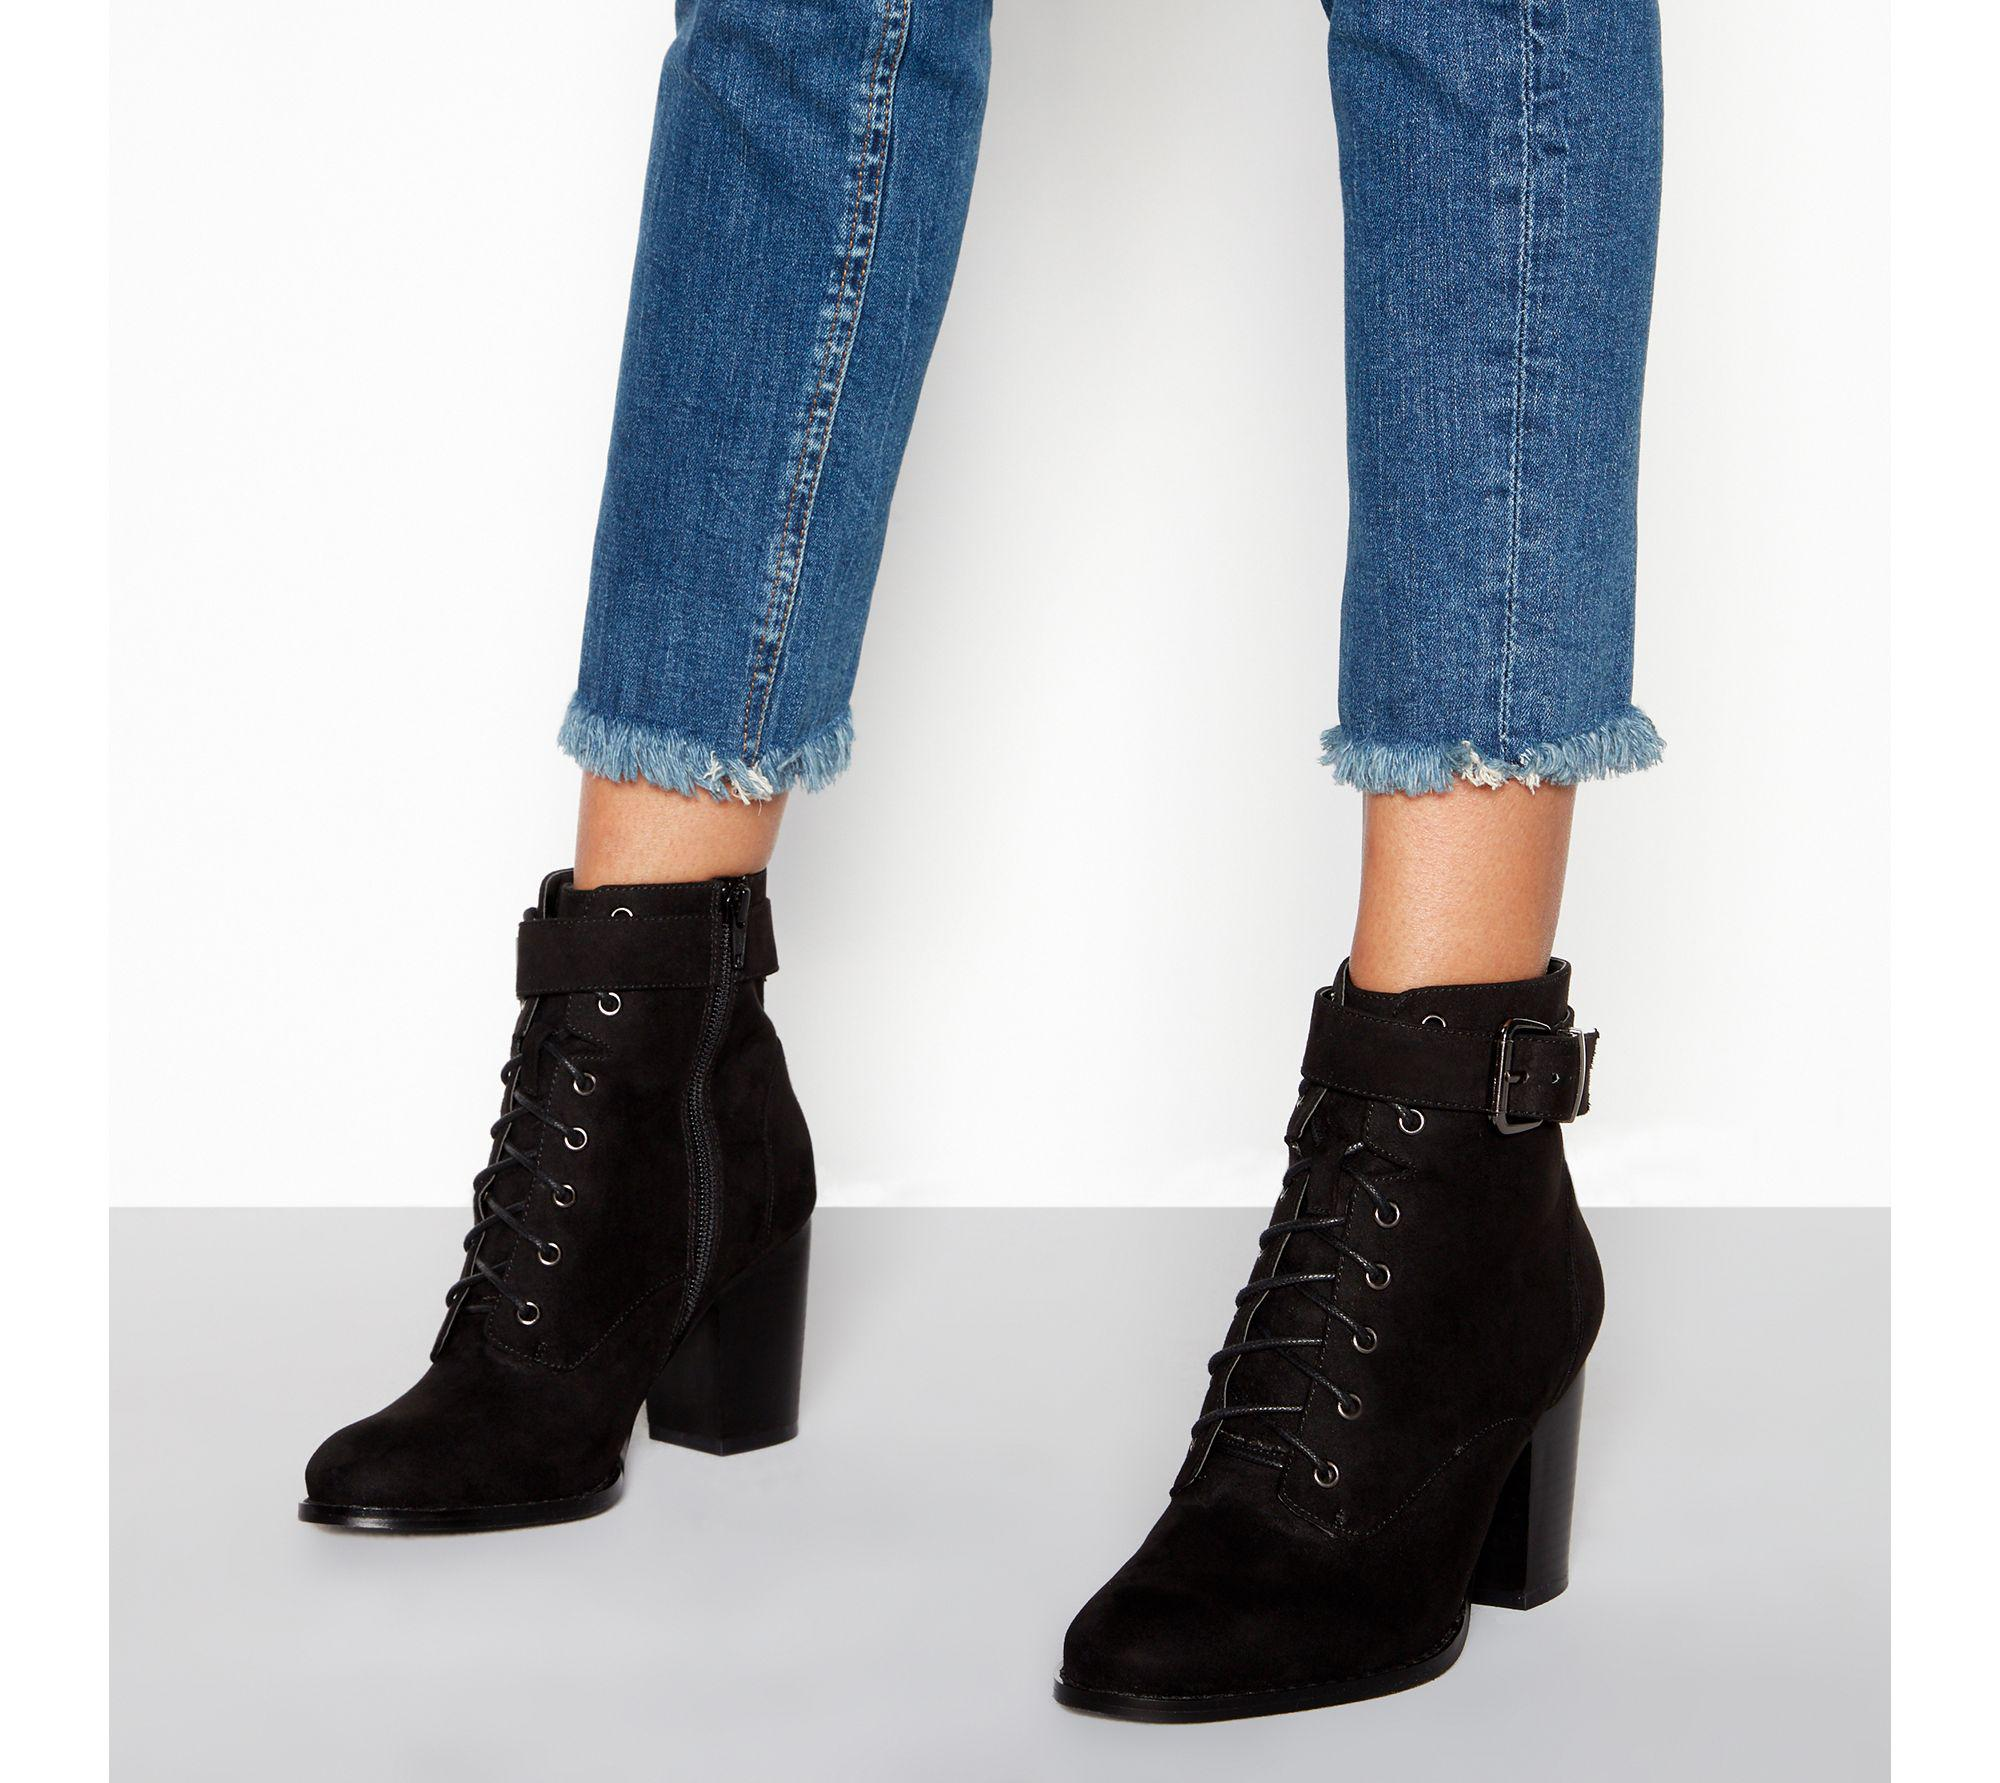 buy cheap wiki Black suedette lace-up 'Willoughby' block heel wide fit ankle boots cheap sale footlocker pictures outlet visit new real outlet best wholesale vX0zGiAX